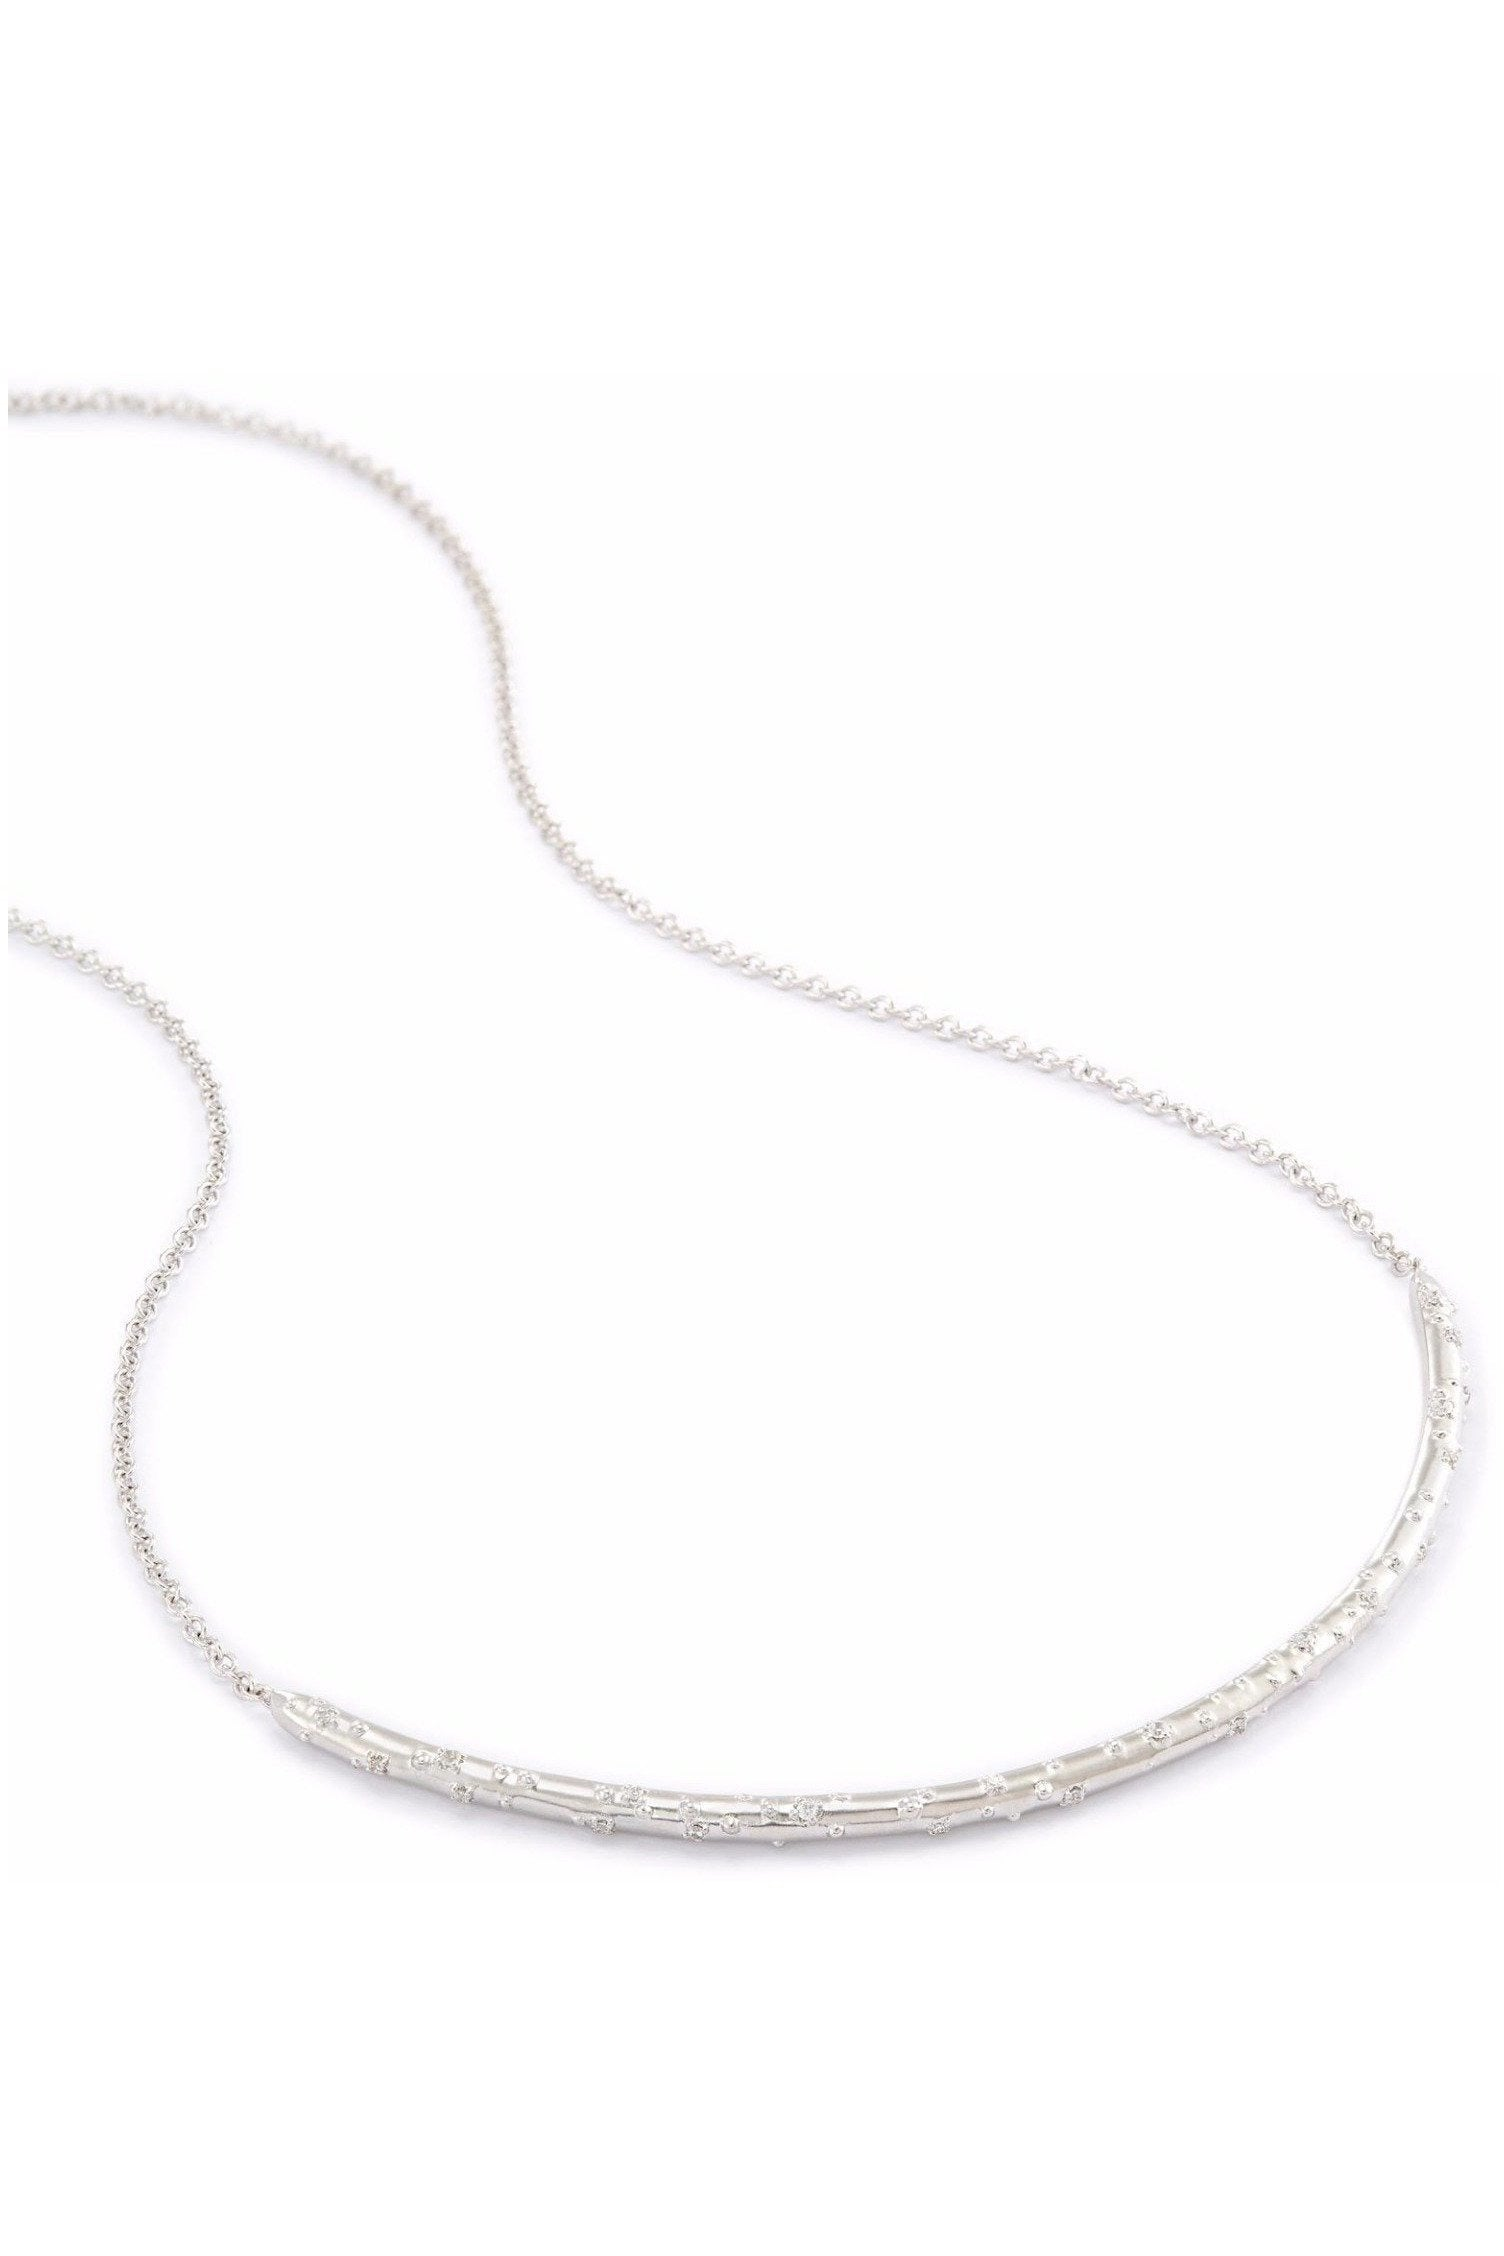 Kendra Scott: Amber Choker Necklace In Silver